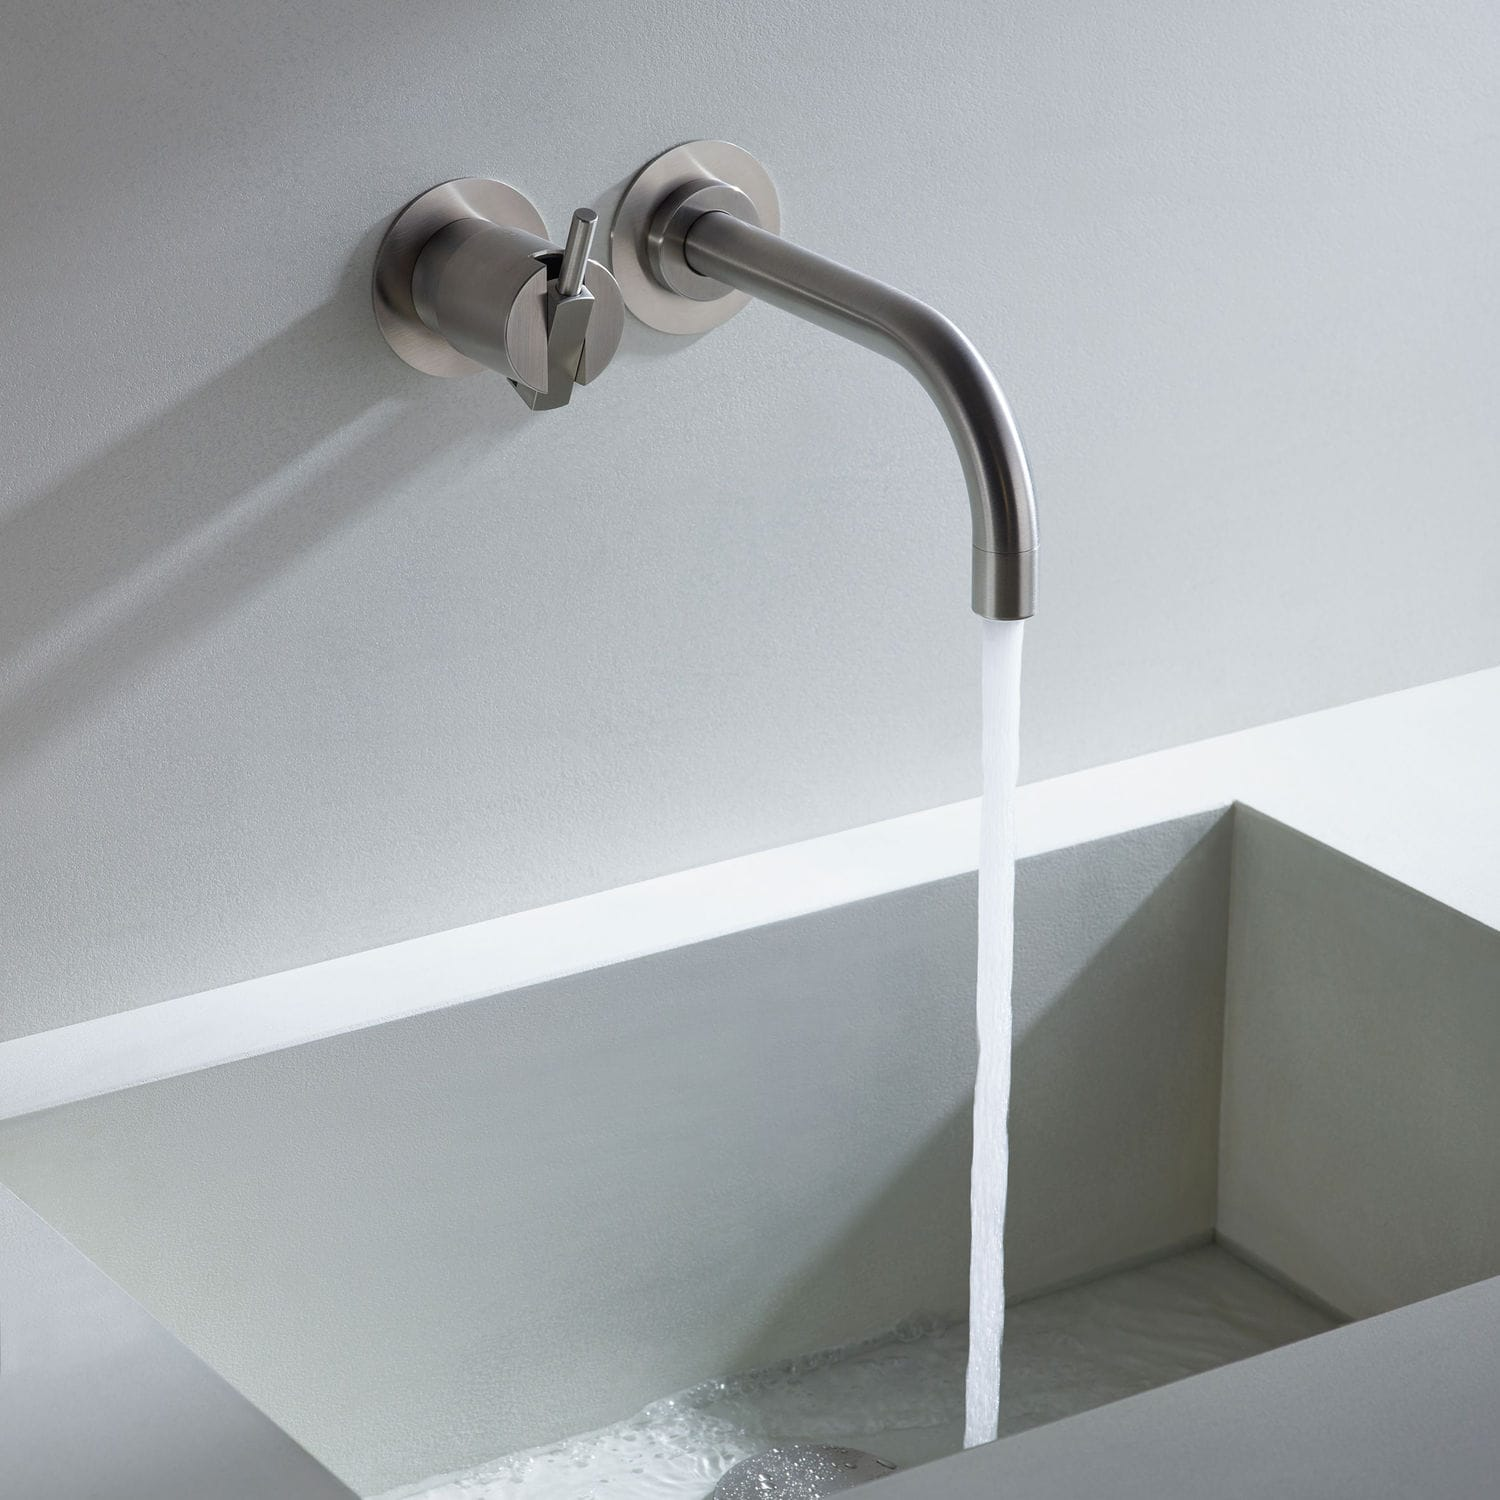 Built-in mixer tap / metal / kitchen / 2-hole - 111 - VOLA